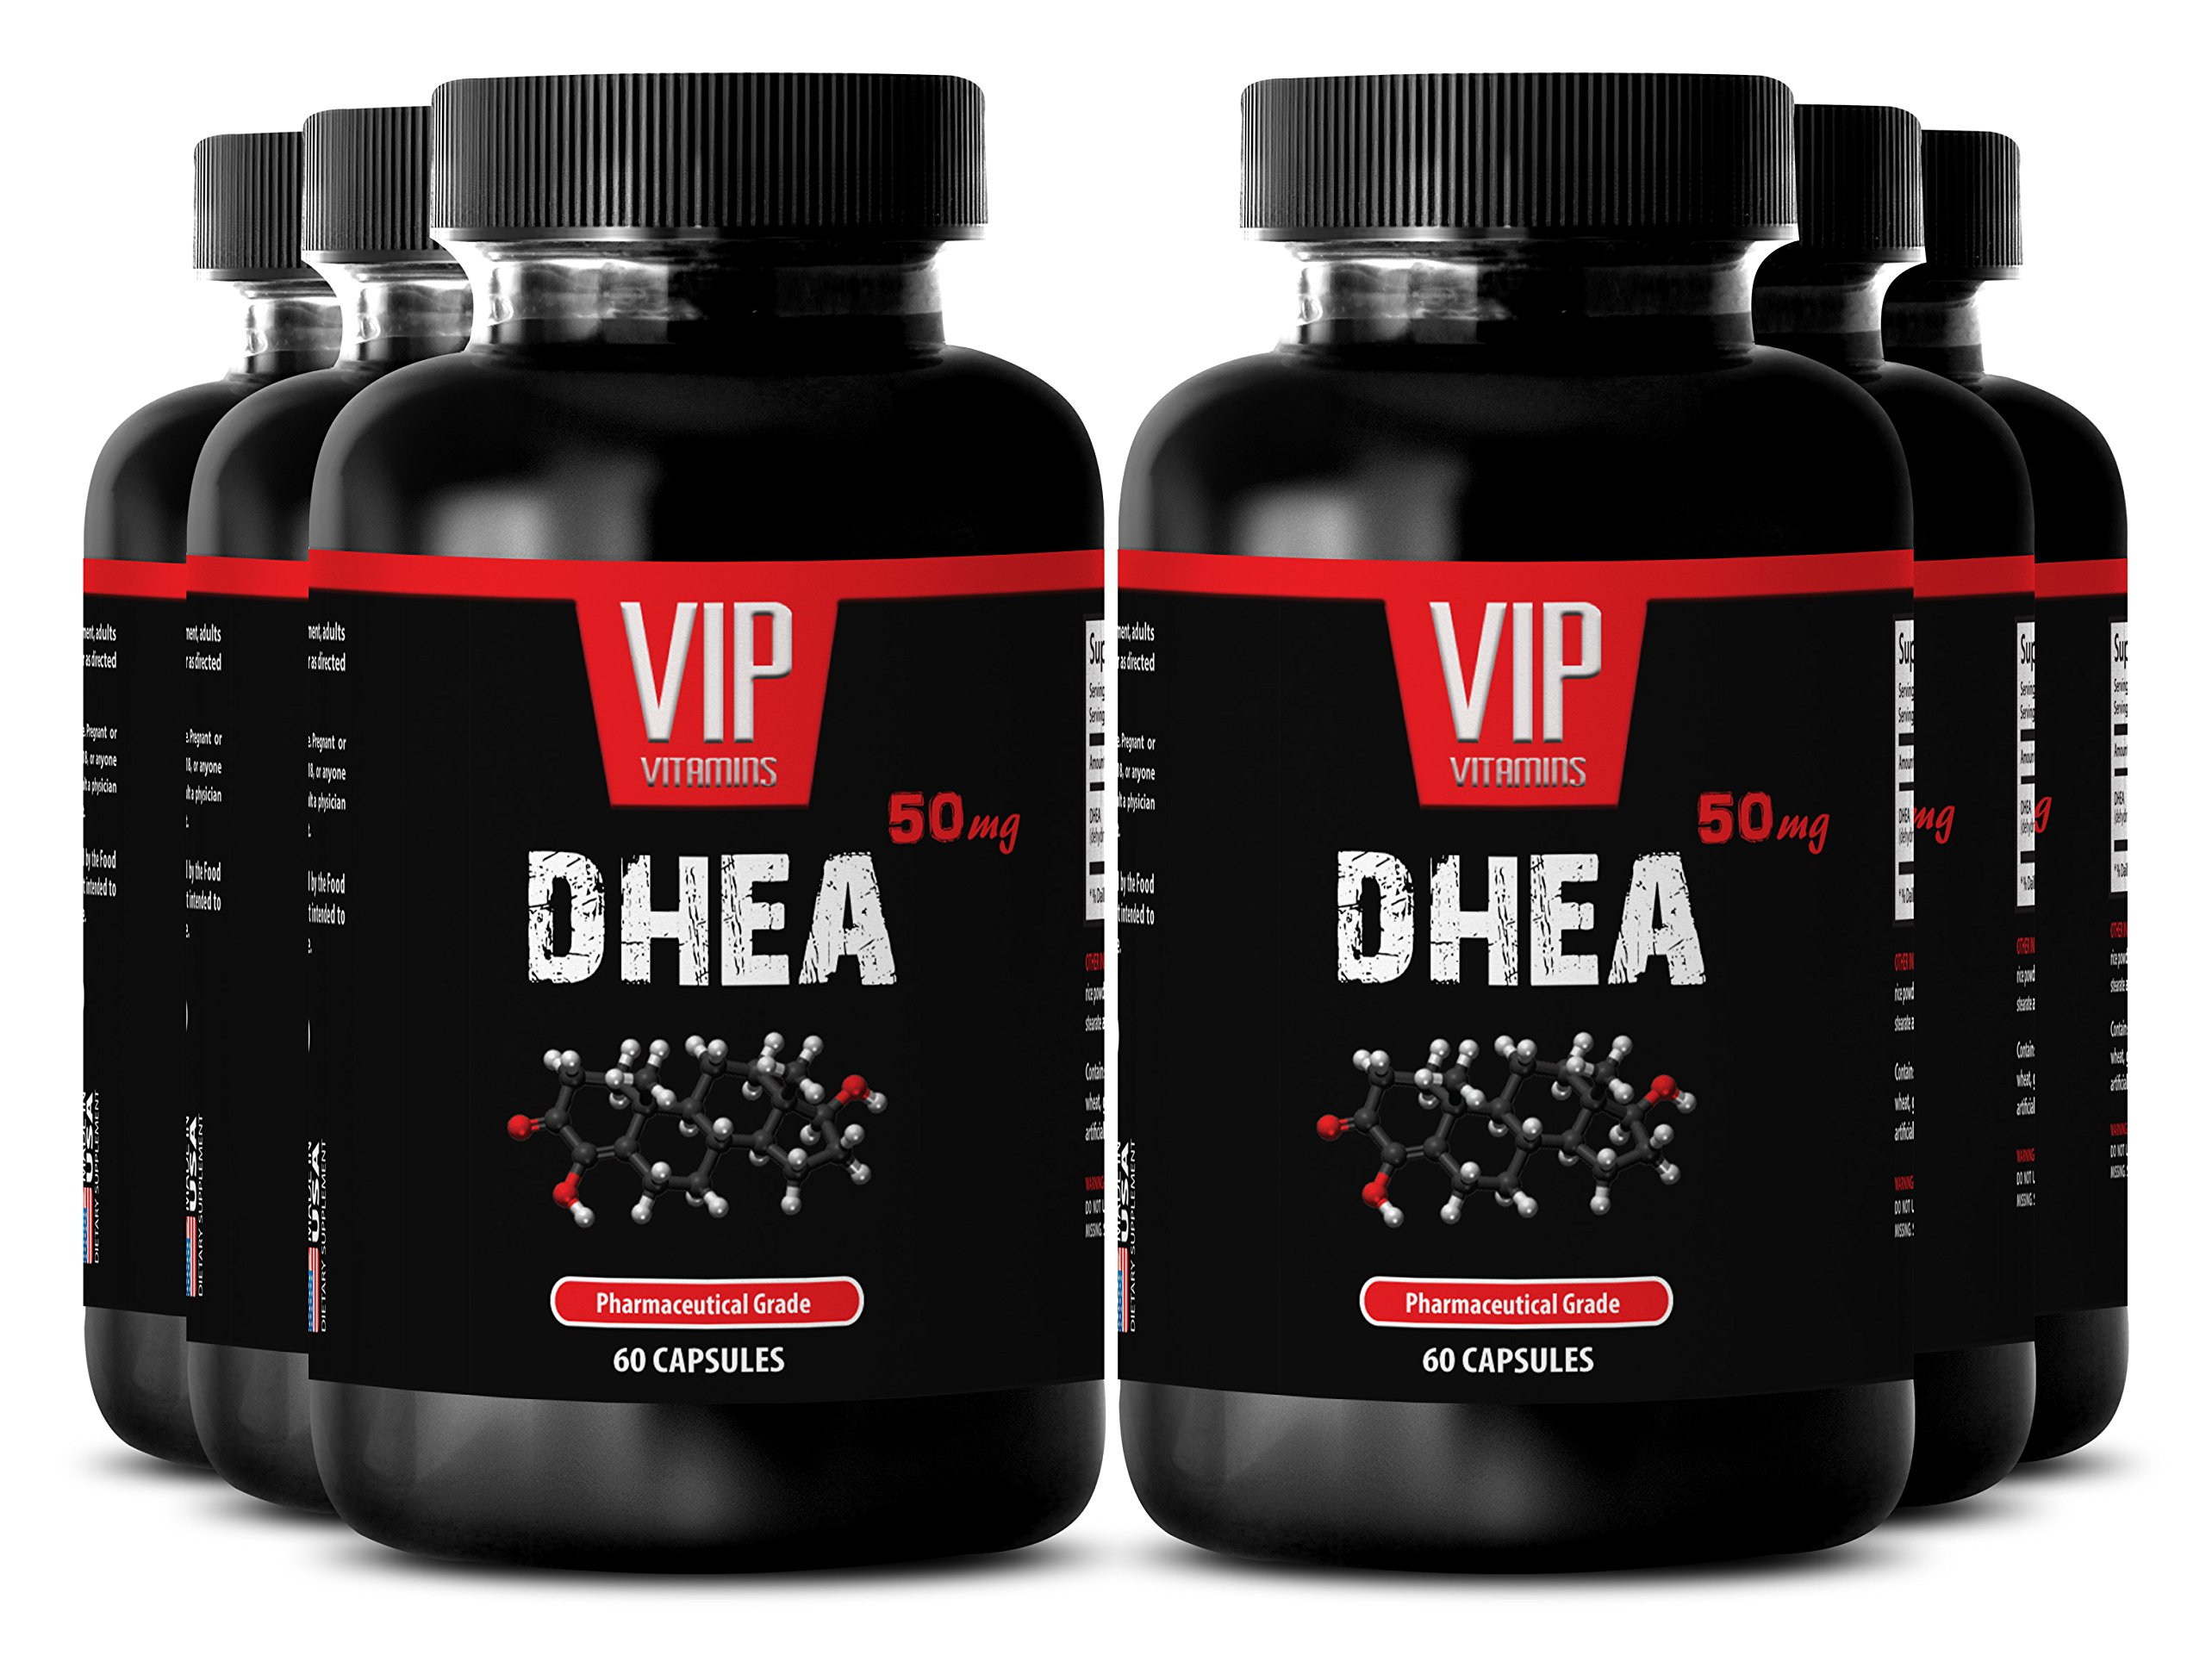 Weight loss - DHEA 50 mg - Weight management - 6 Bottles 360 Capsules by VIP VITAMINS (Image #1)